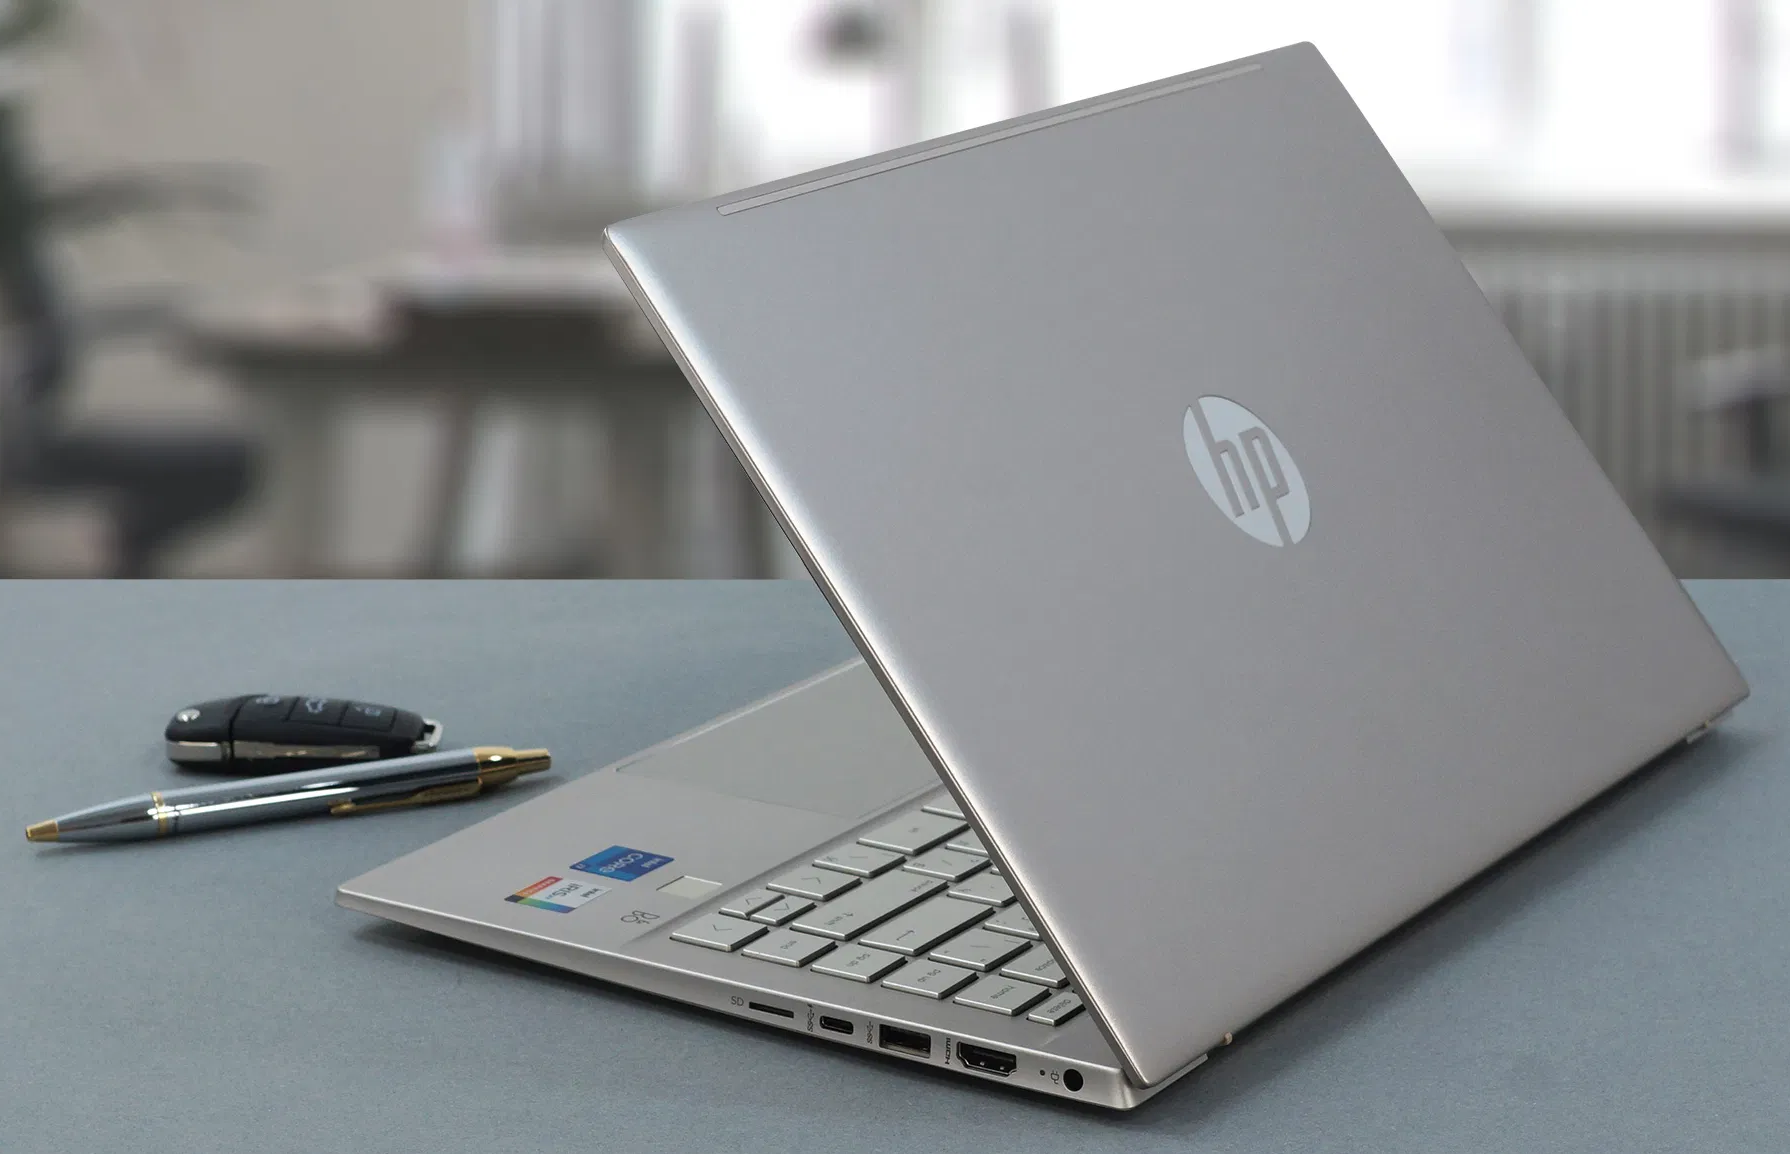 HP Pavilion 14 (14-dv0000) review – getting the Pavilion series on the right track